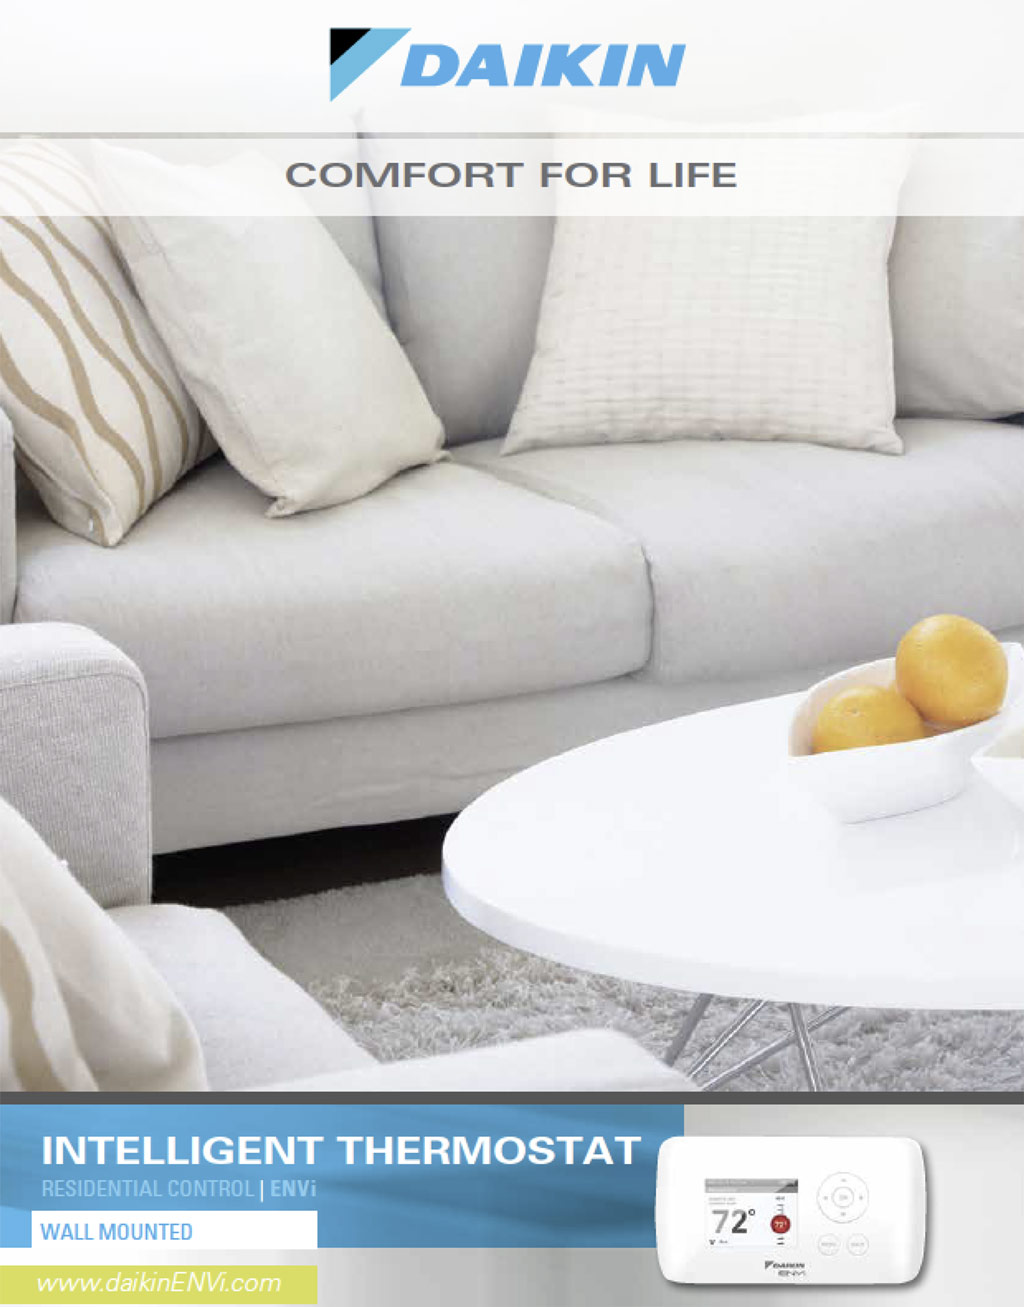 Daikin Intelligent Thermostat